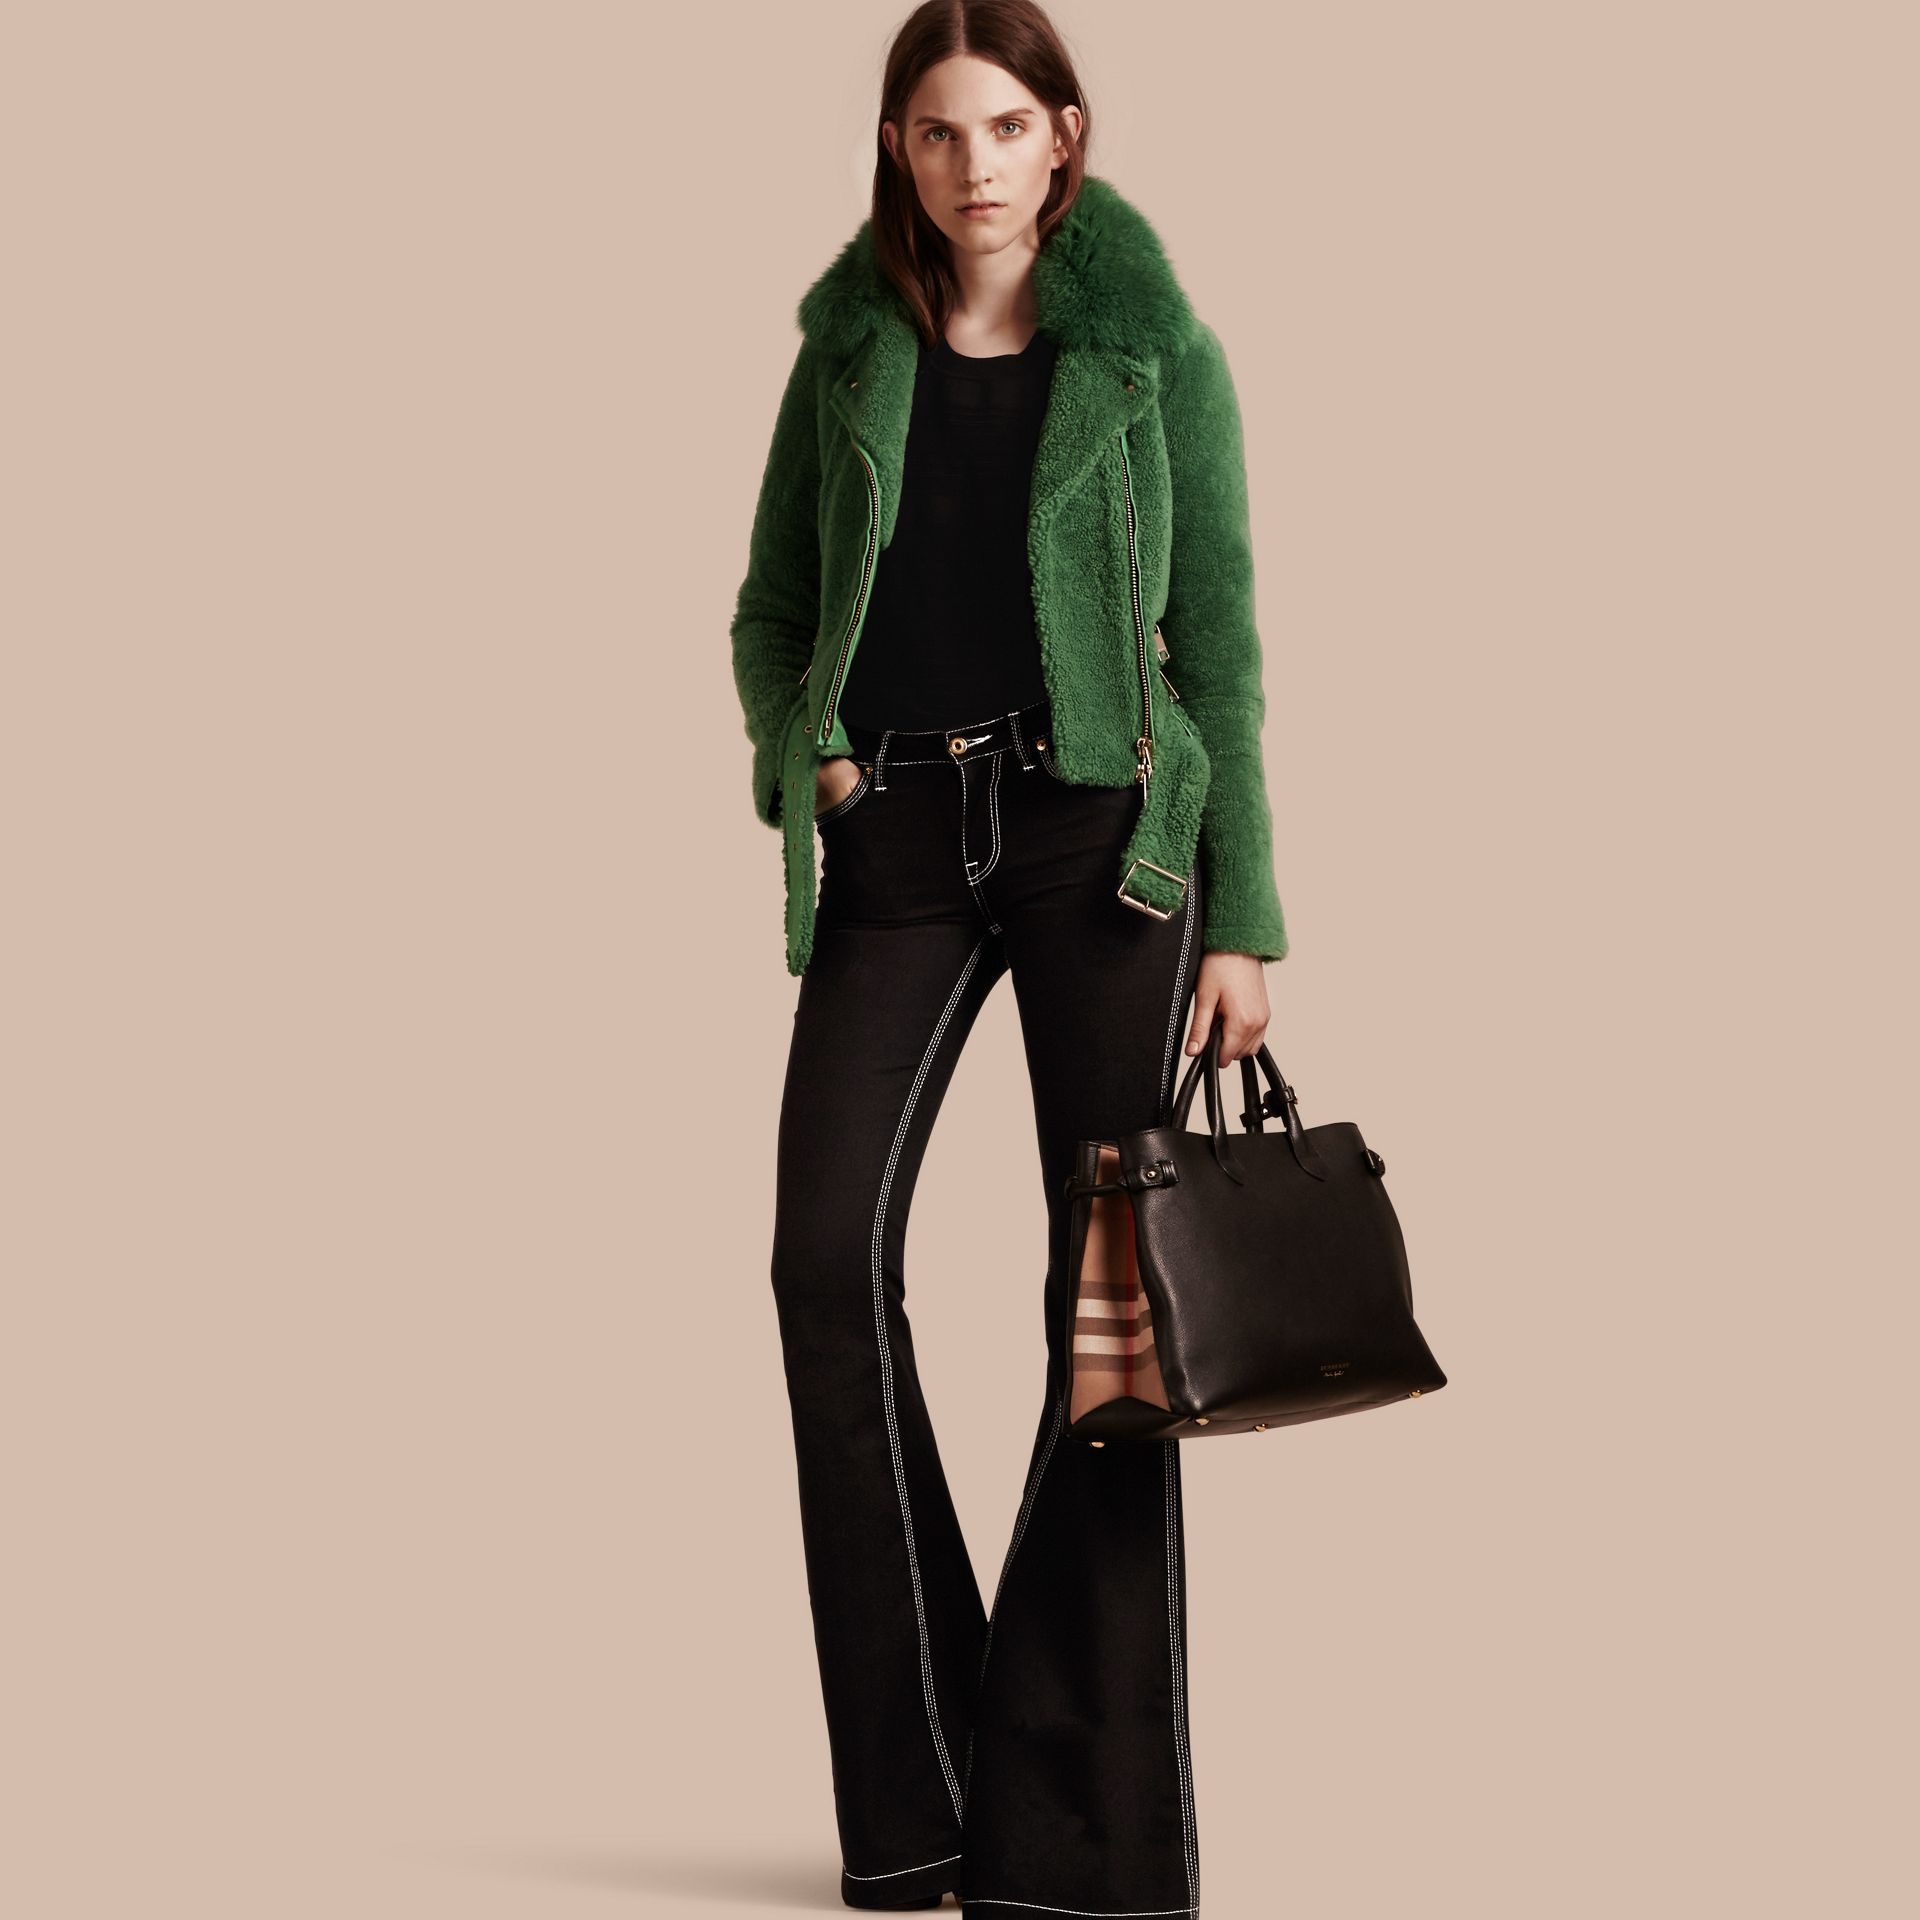 Pigment green Shearling Biker Jacket with Fox Fur Collar Pigment Green - gallery image 1